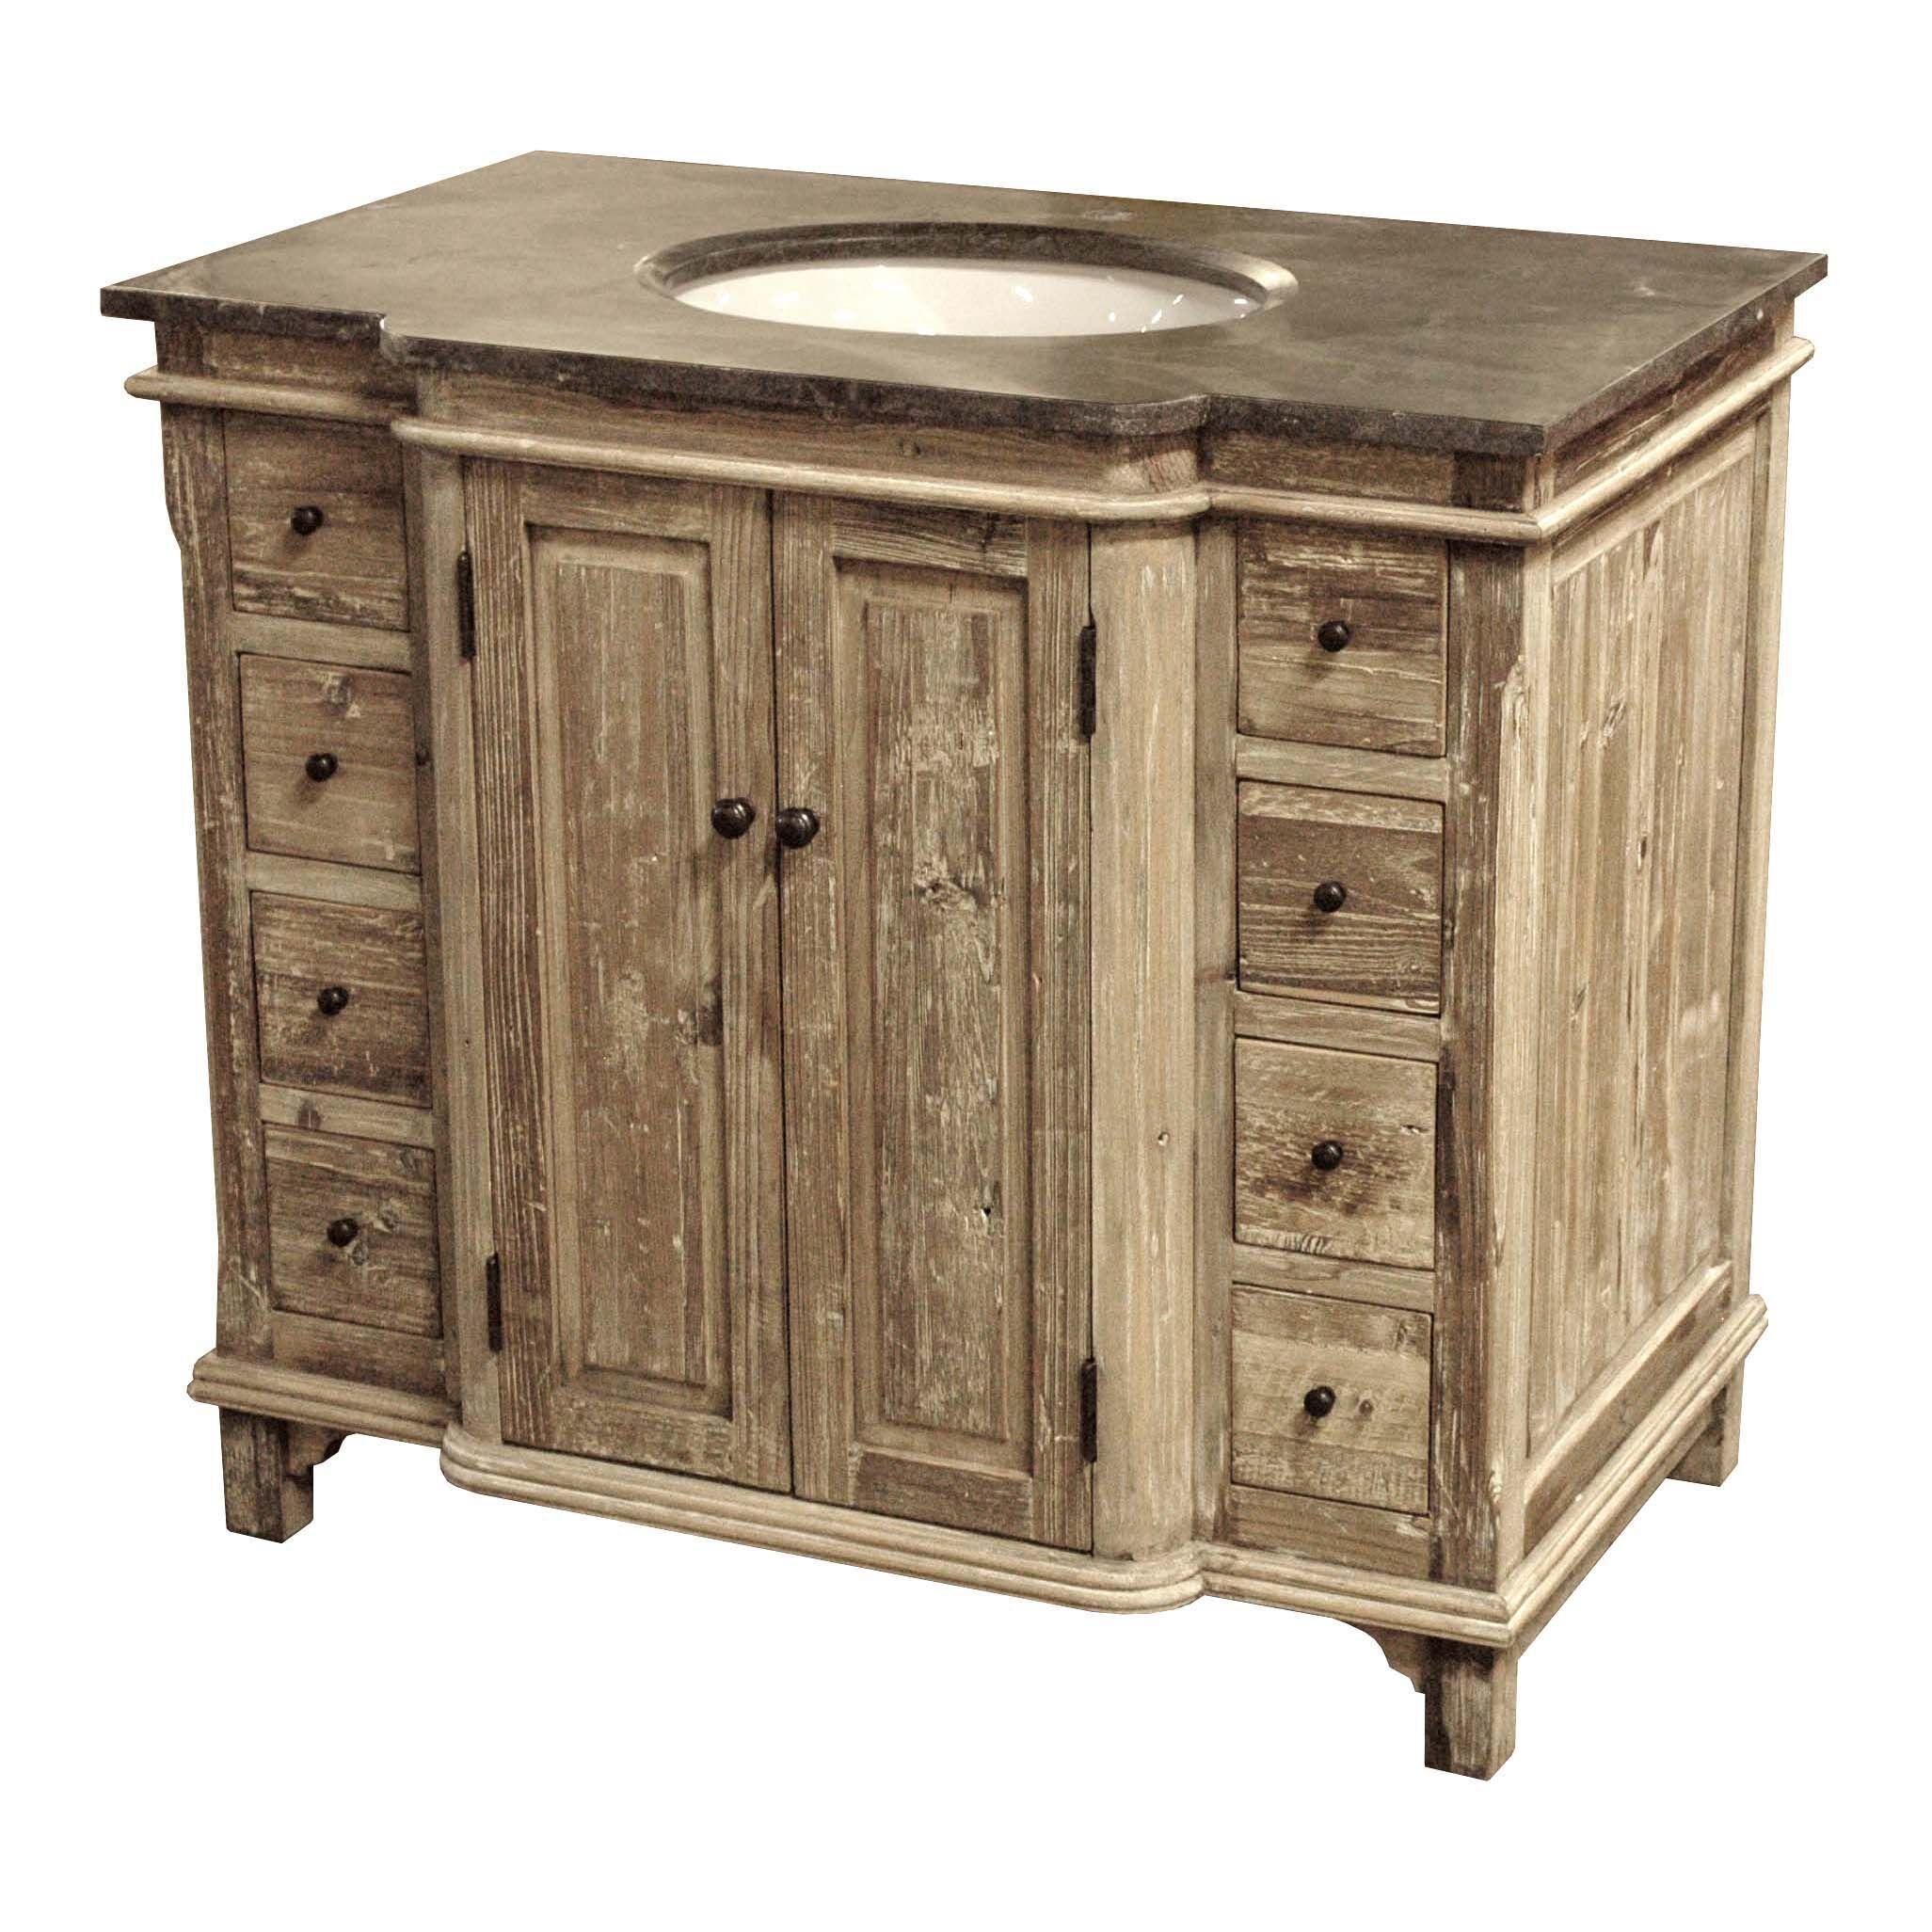 "38"" Handcrafted Reclaimed Pine Solid Wood Single Bath Vanity"